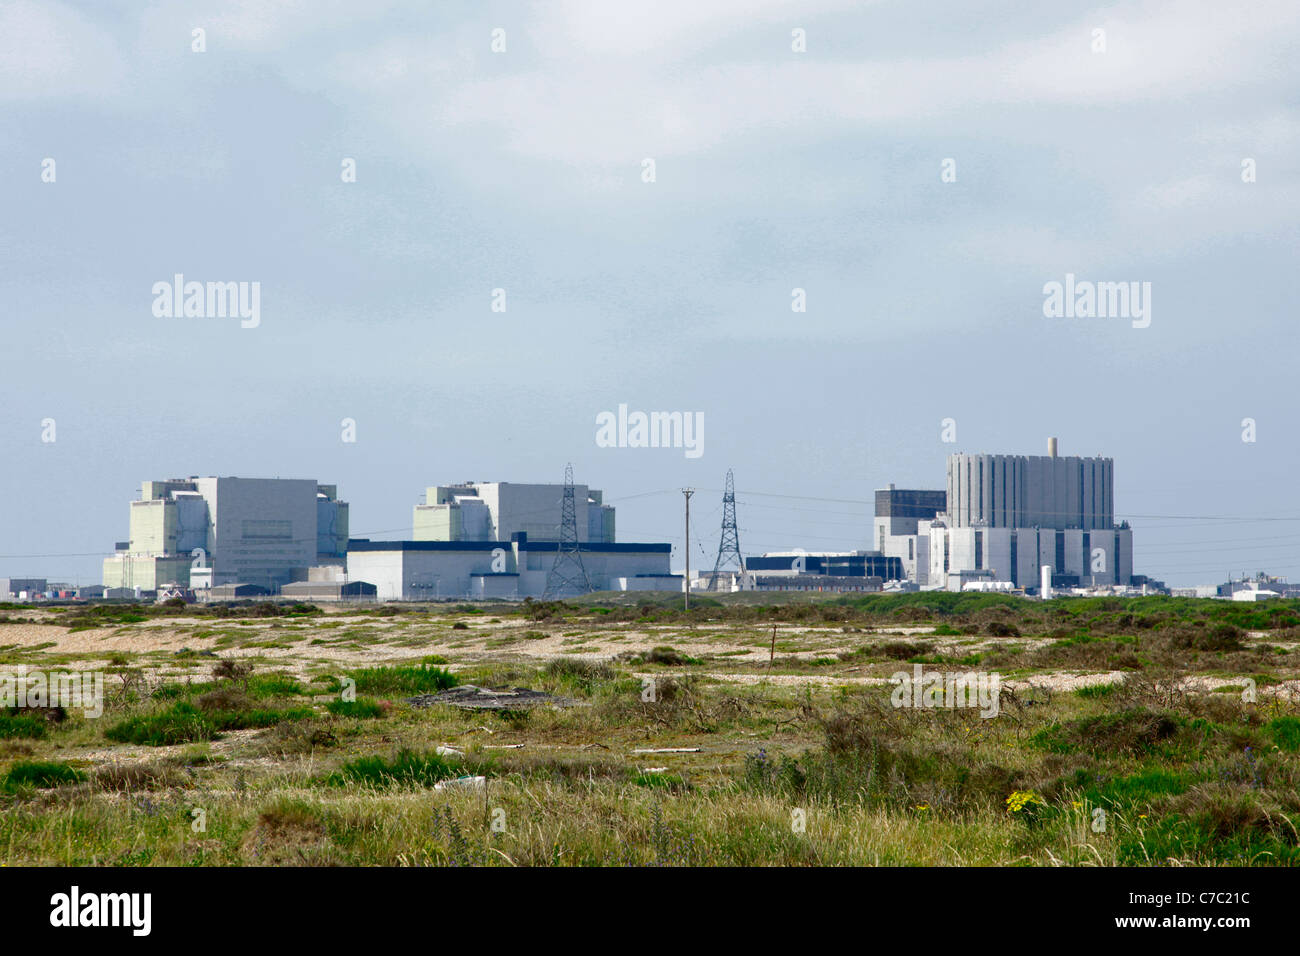 Dungeness B nuclear power station - Stock Image